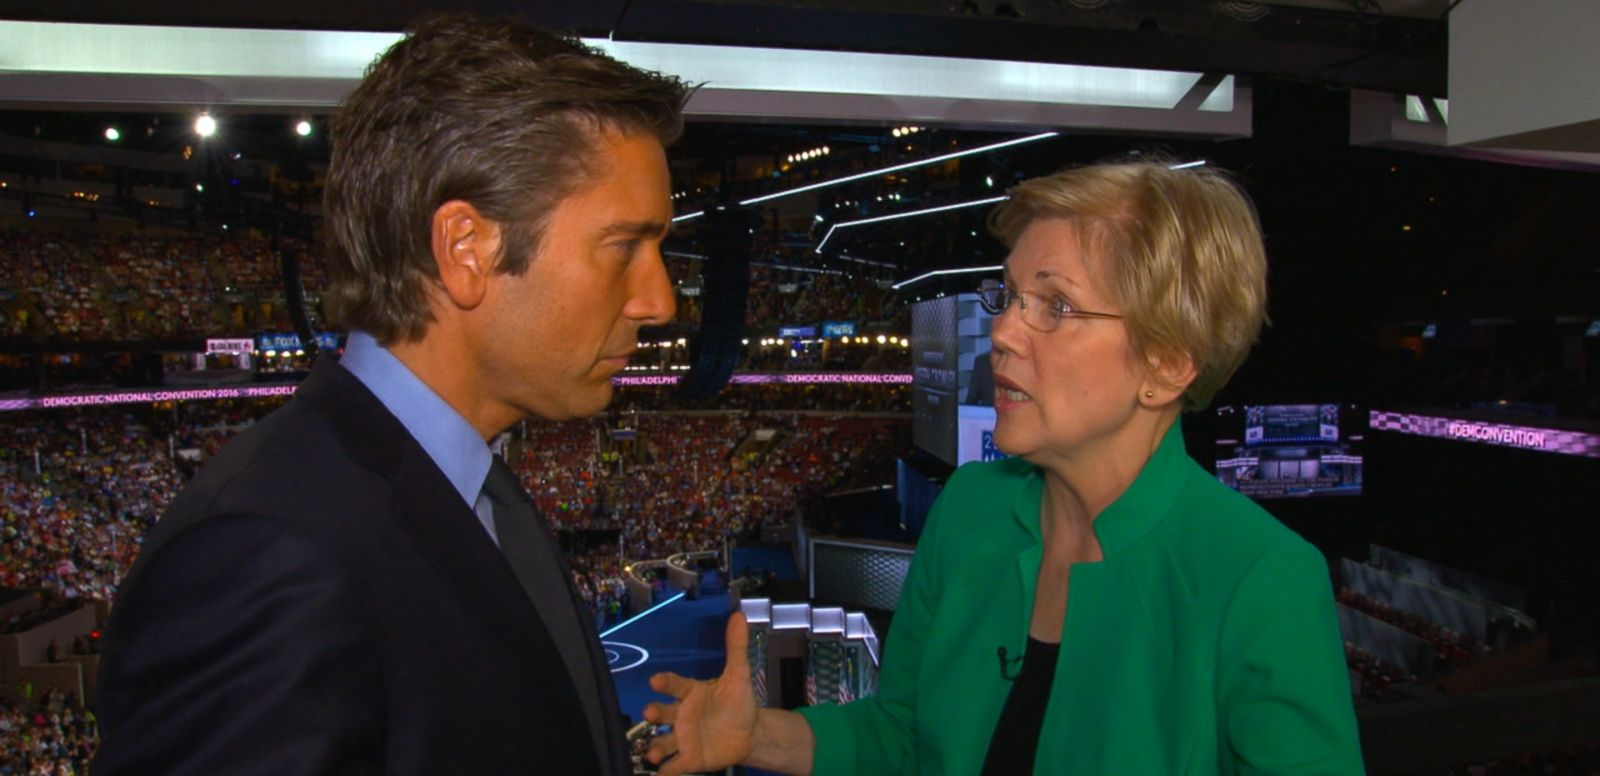 VIDEO: The Massachusetts senator spoke to ABC News' David Muir at the Democratic National Convention.